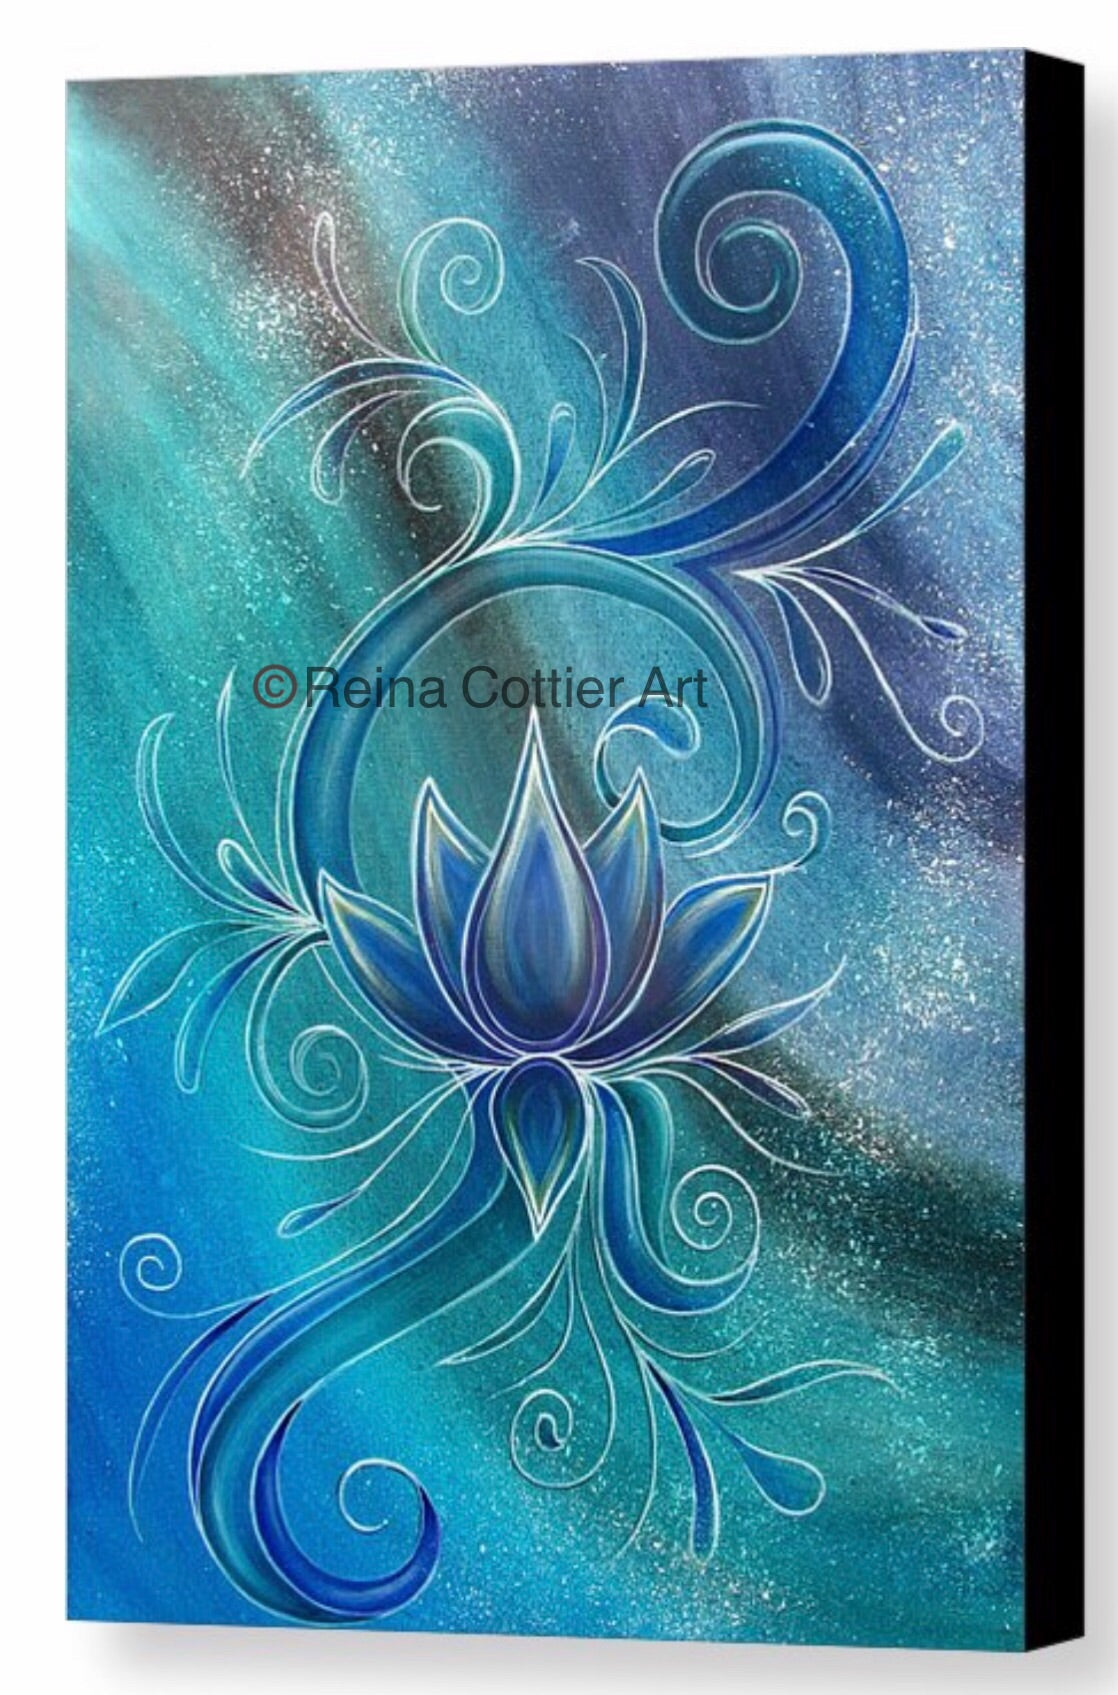 Canvas Print - Lotus 1 (4 sizes)